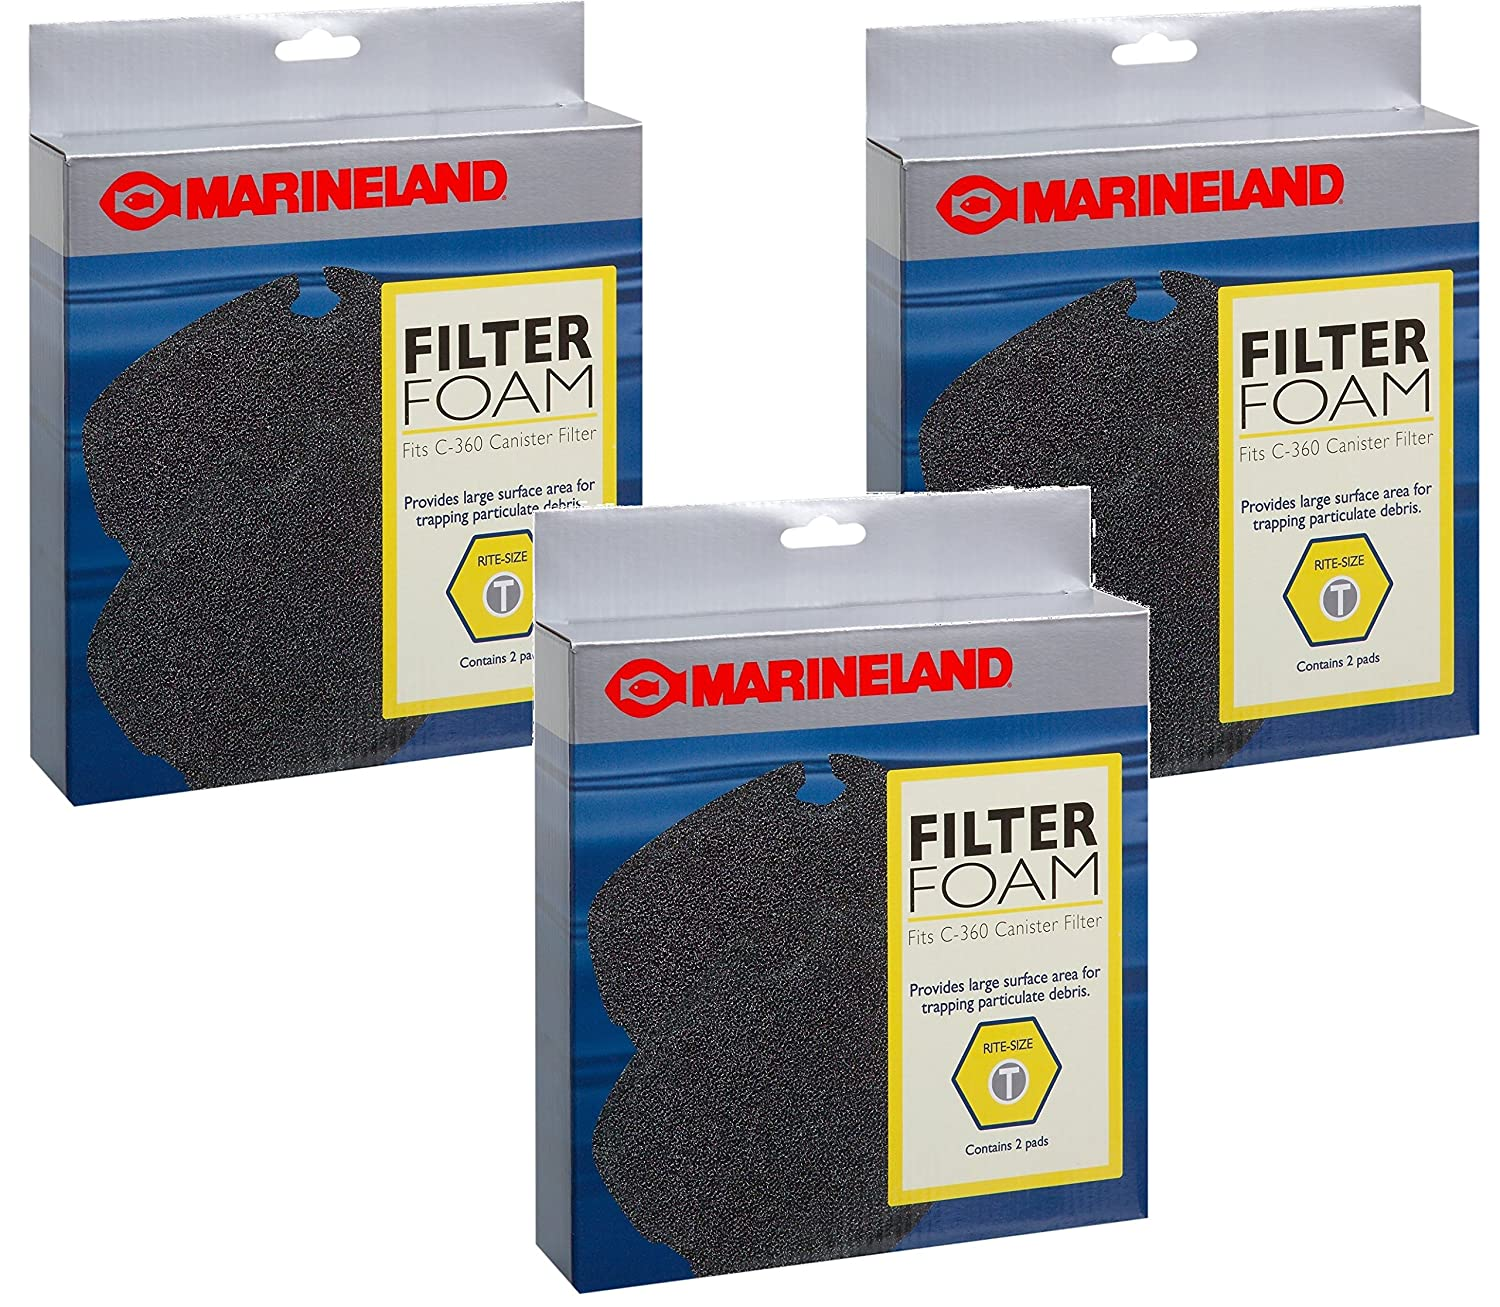 Marineland C-360 Canister Filter Foam Rite-Size T 6 Pads Total(3 Packs with 2 per Pack)